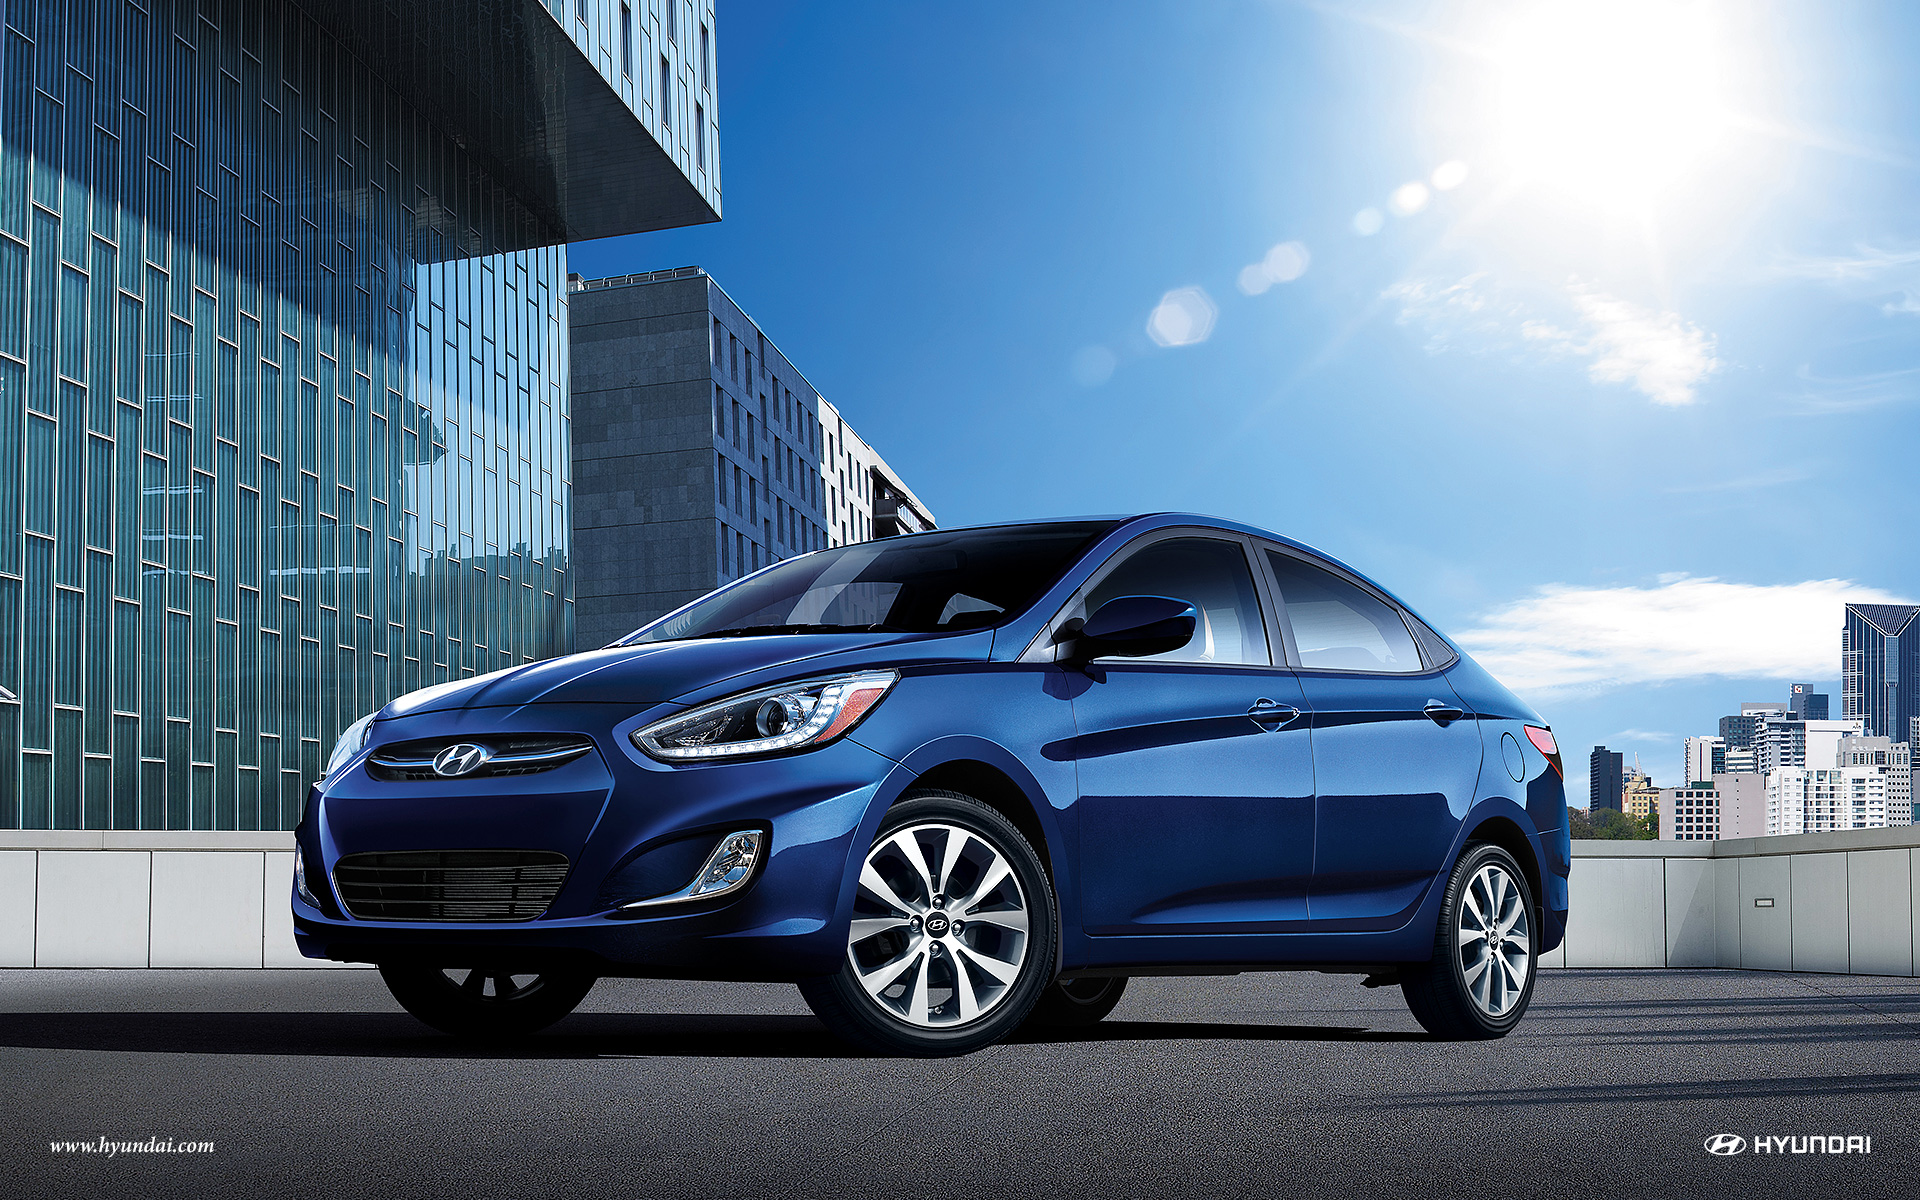 dealer hyundai specials piazza promotion lease of summer is west and chester a